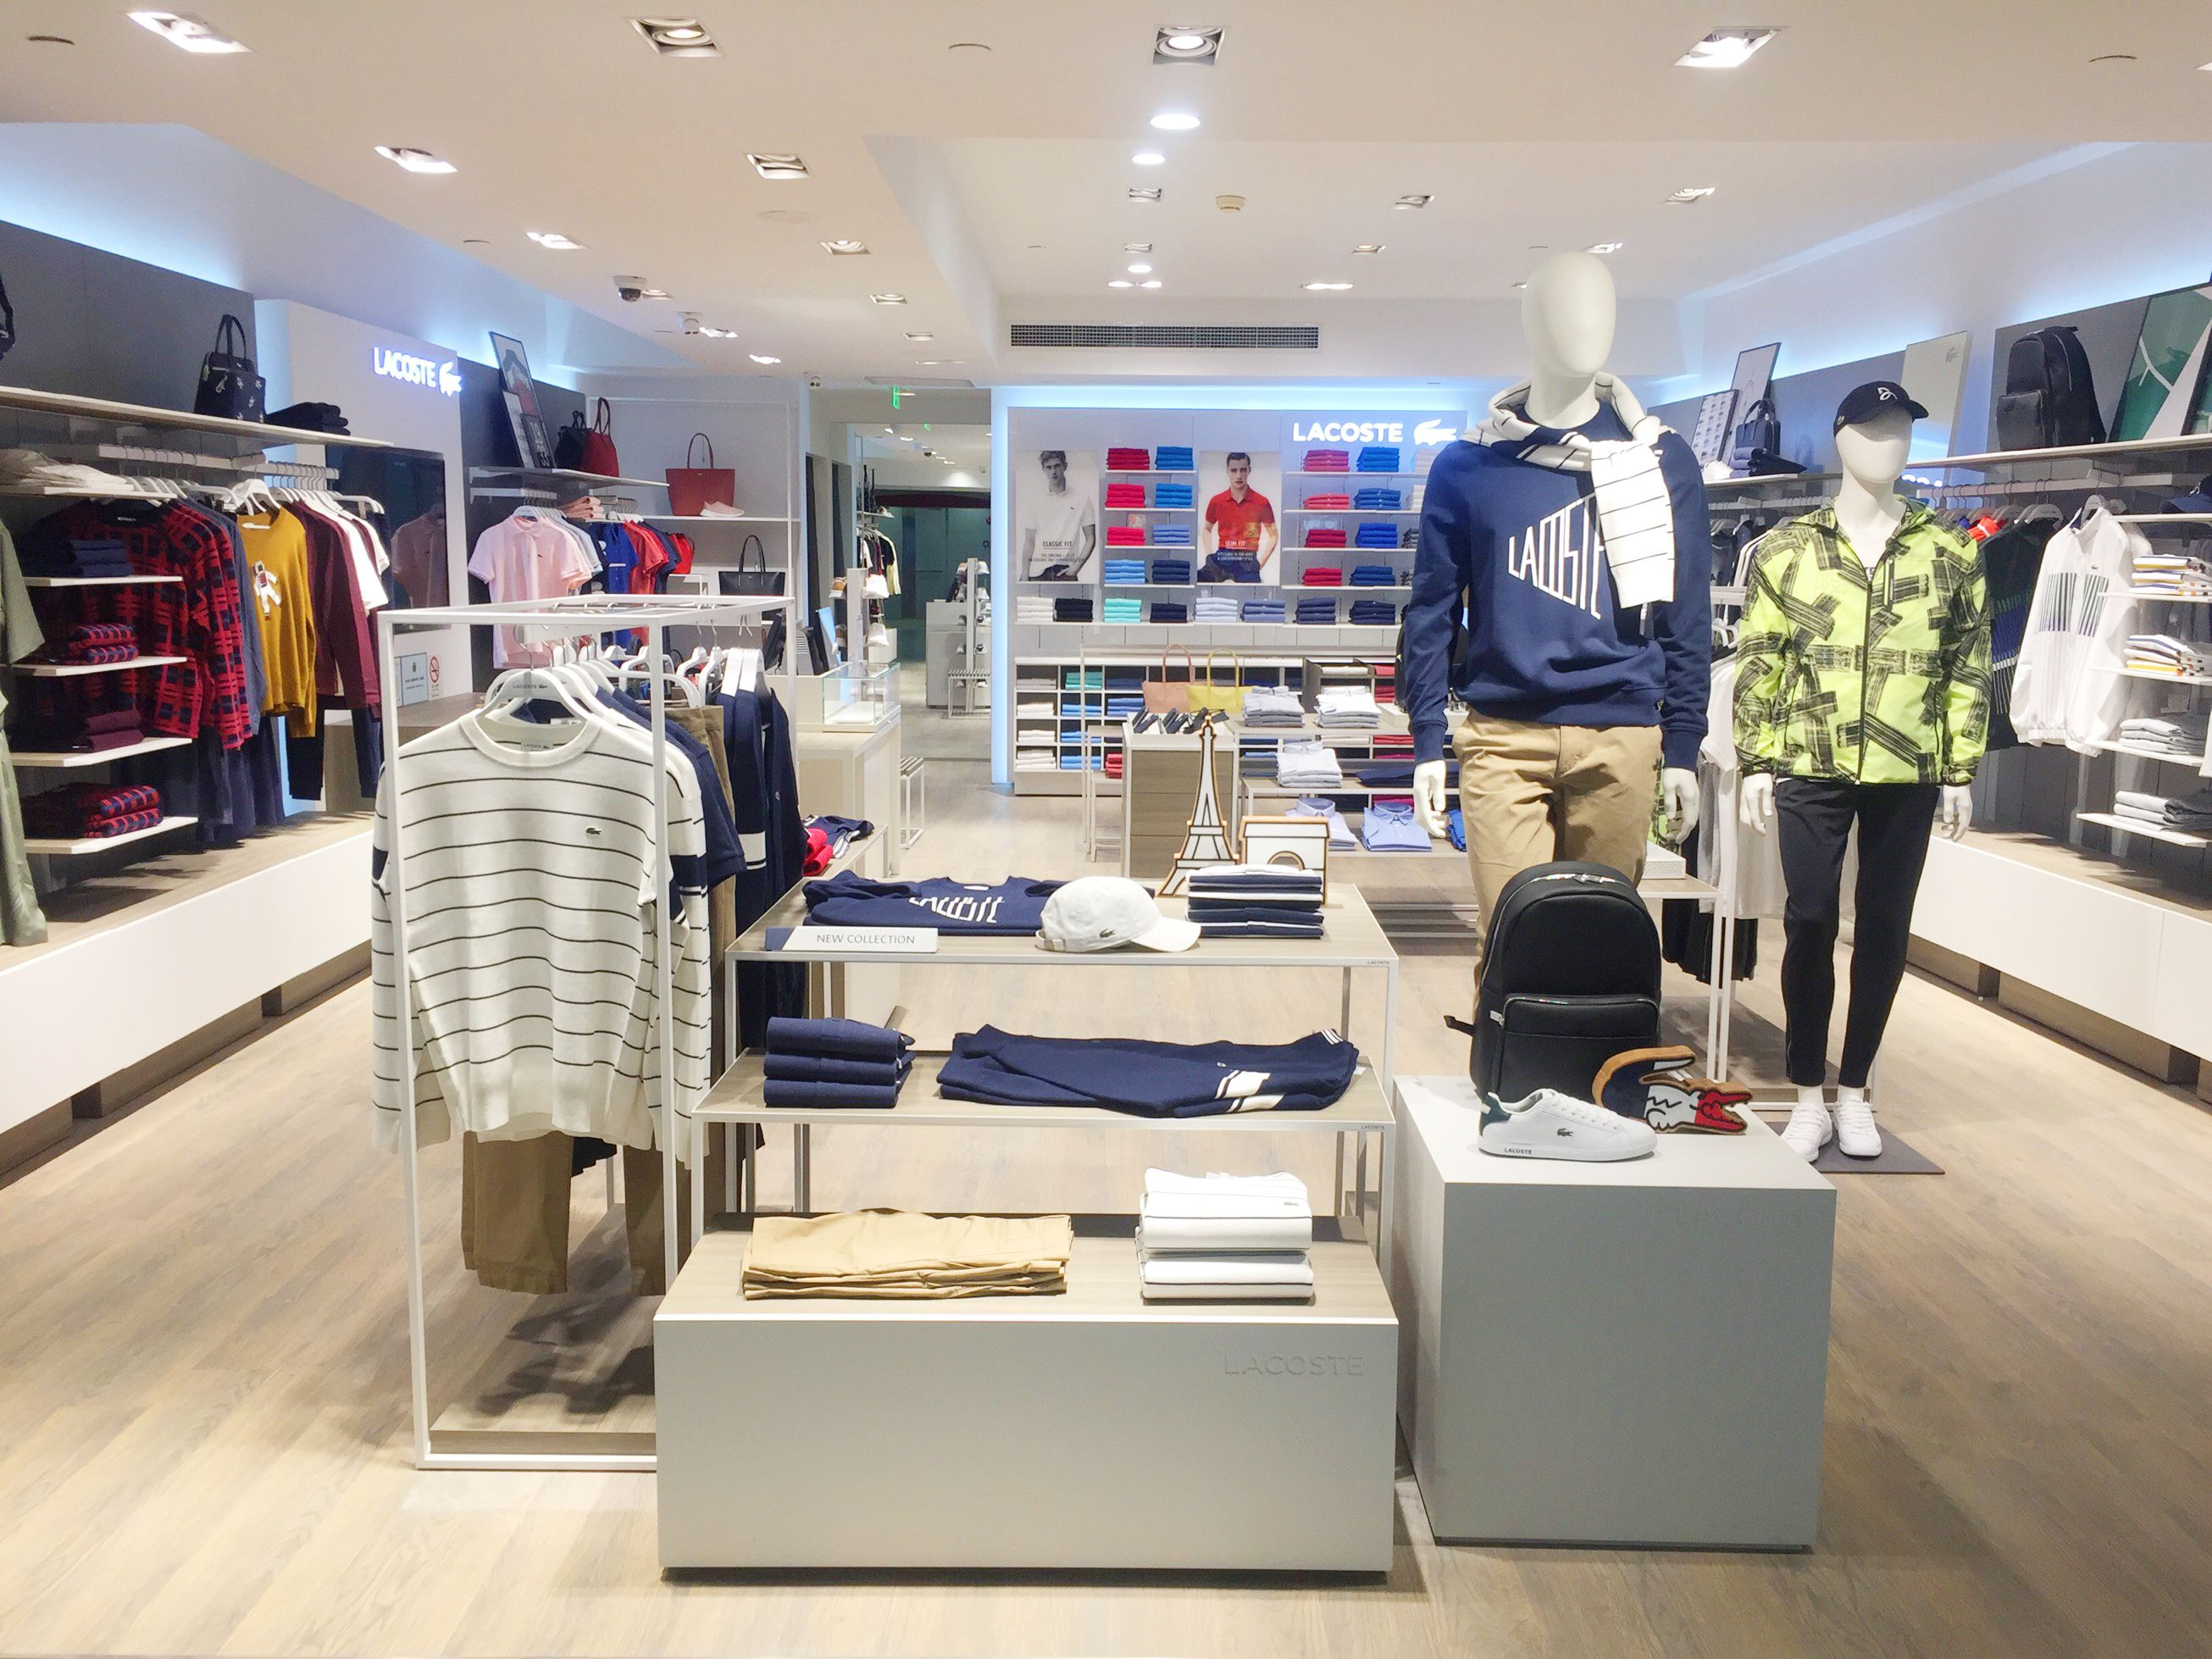 29331fb4619 Lacoste extends China travel retail presence with Shanghai Pudong store  opening - https://